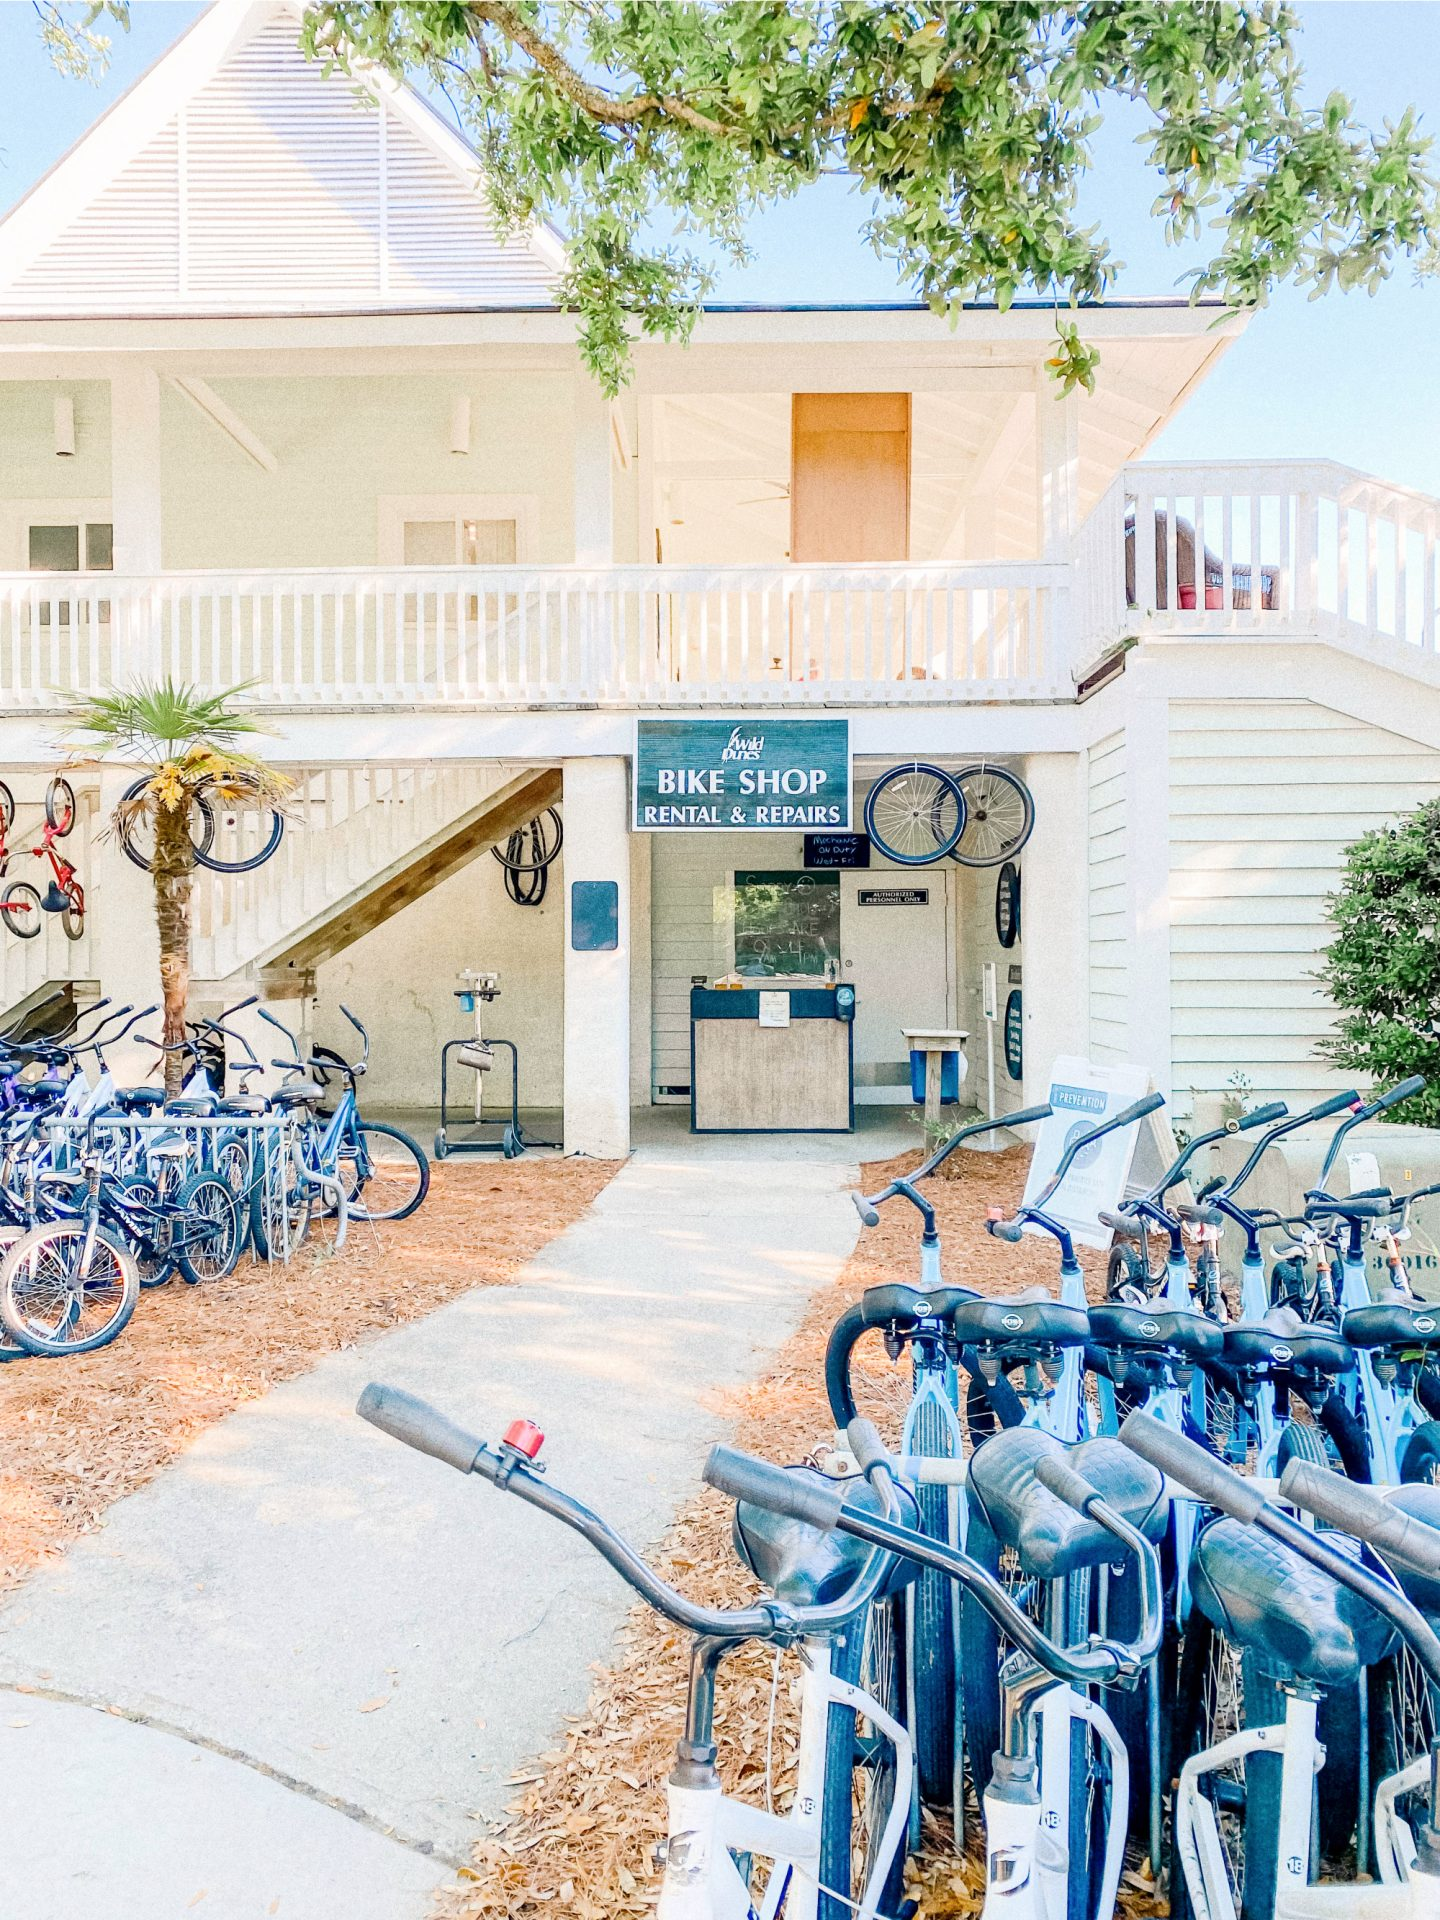 sweetgrass inn, isle of palms, wild dunes resort, resort with pool, vacation South Carolina, Sullivans island, coastal provisions, wedding isle of palms, food, travel guide, where to eat, where to stay, what to do, relax, spa, sweetgrass in resort